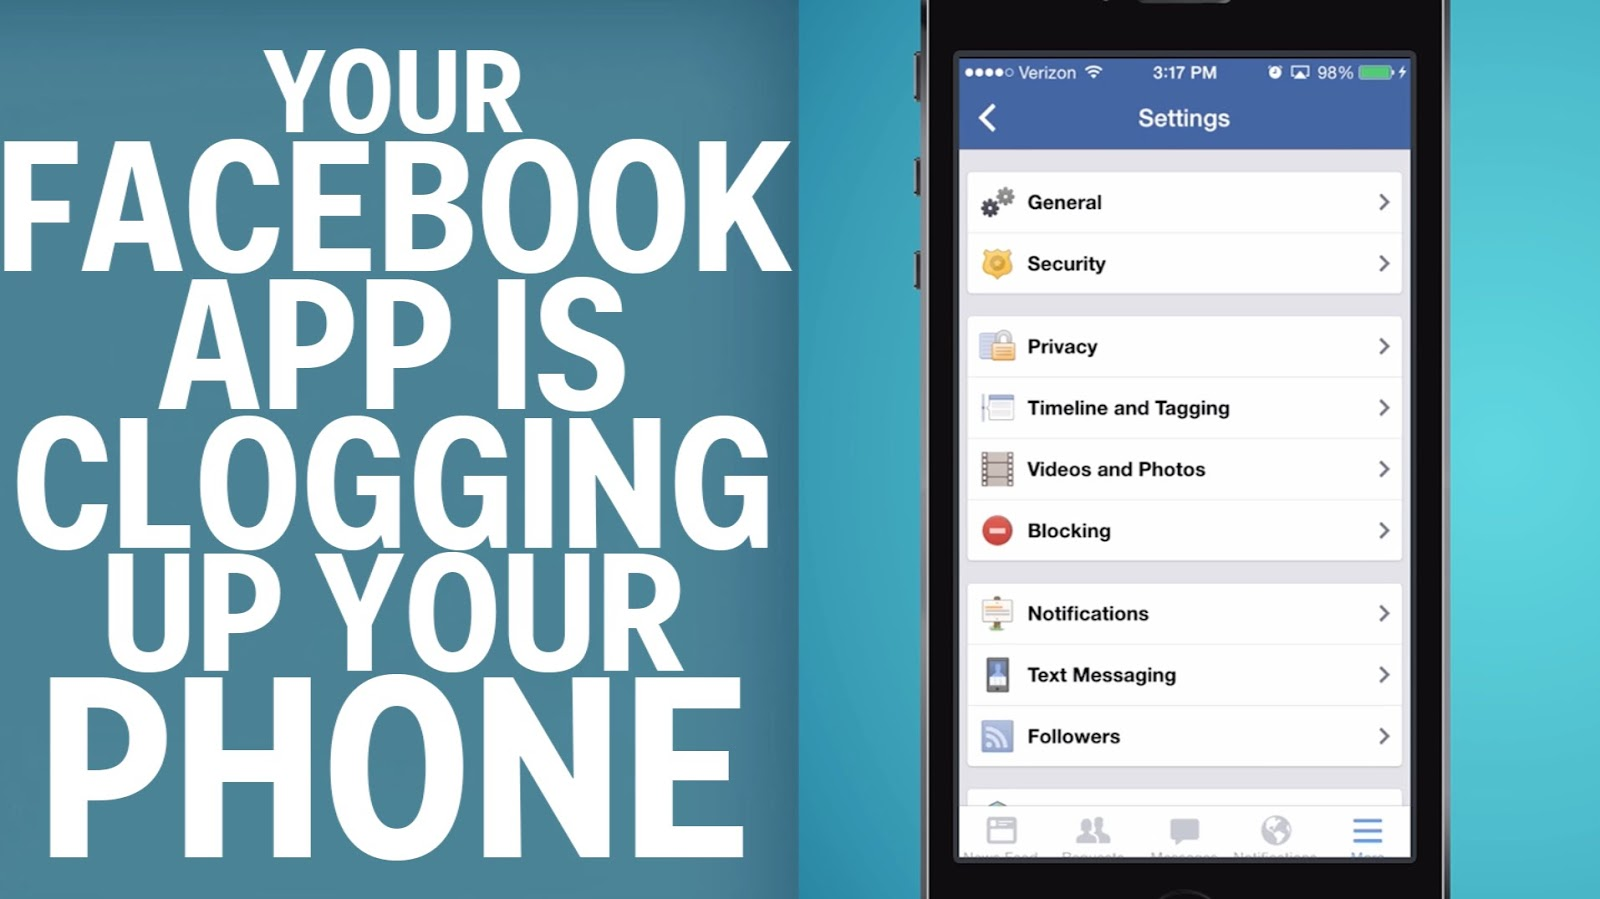 Your Facebook App Is Clogging Up Your Phone [video]